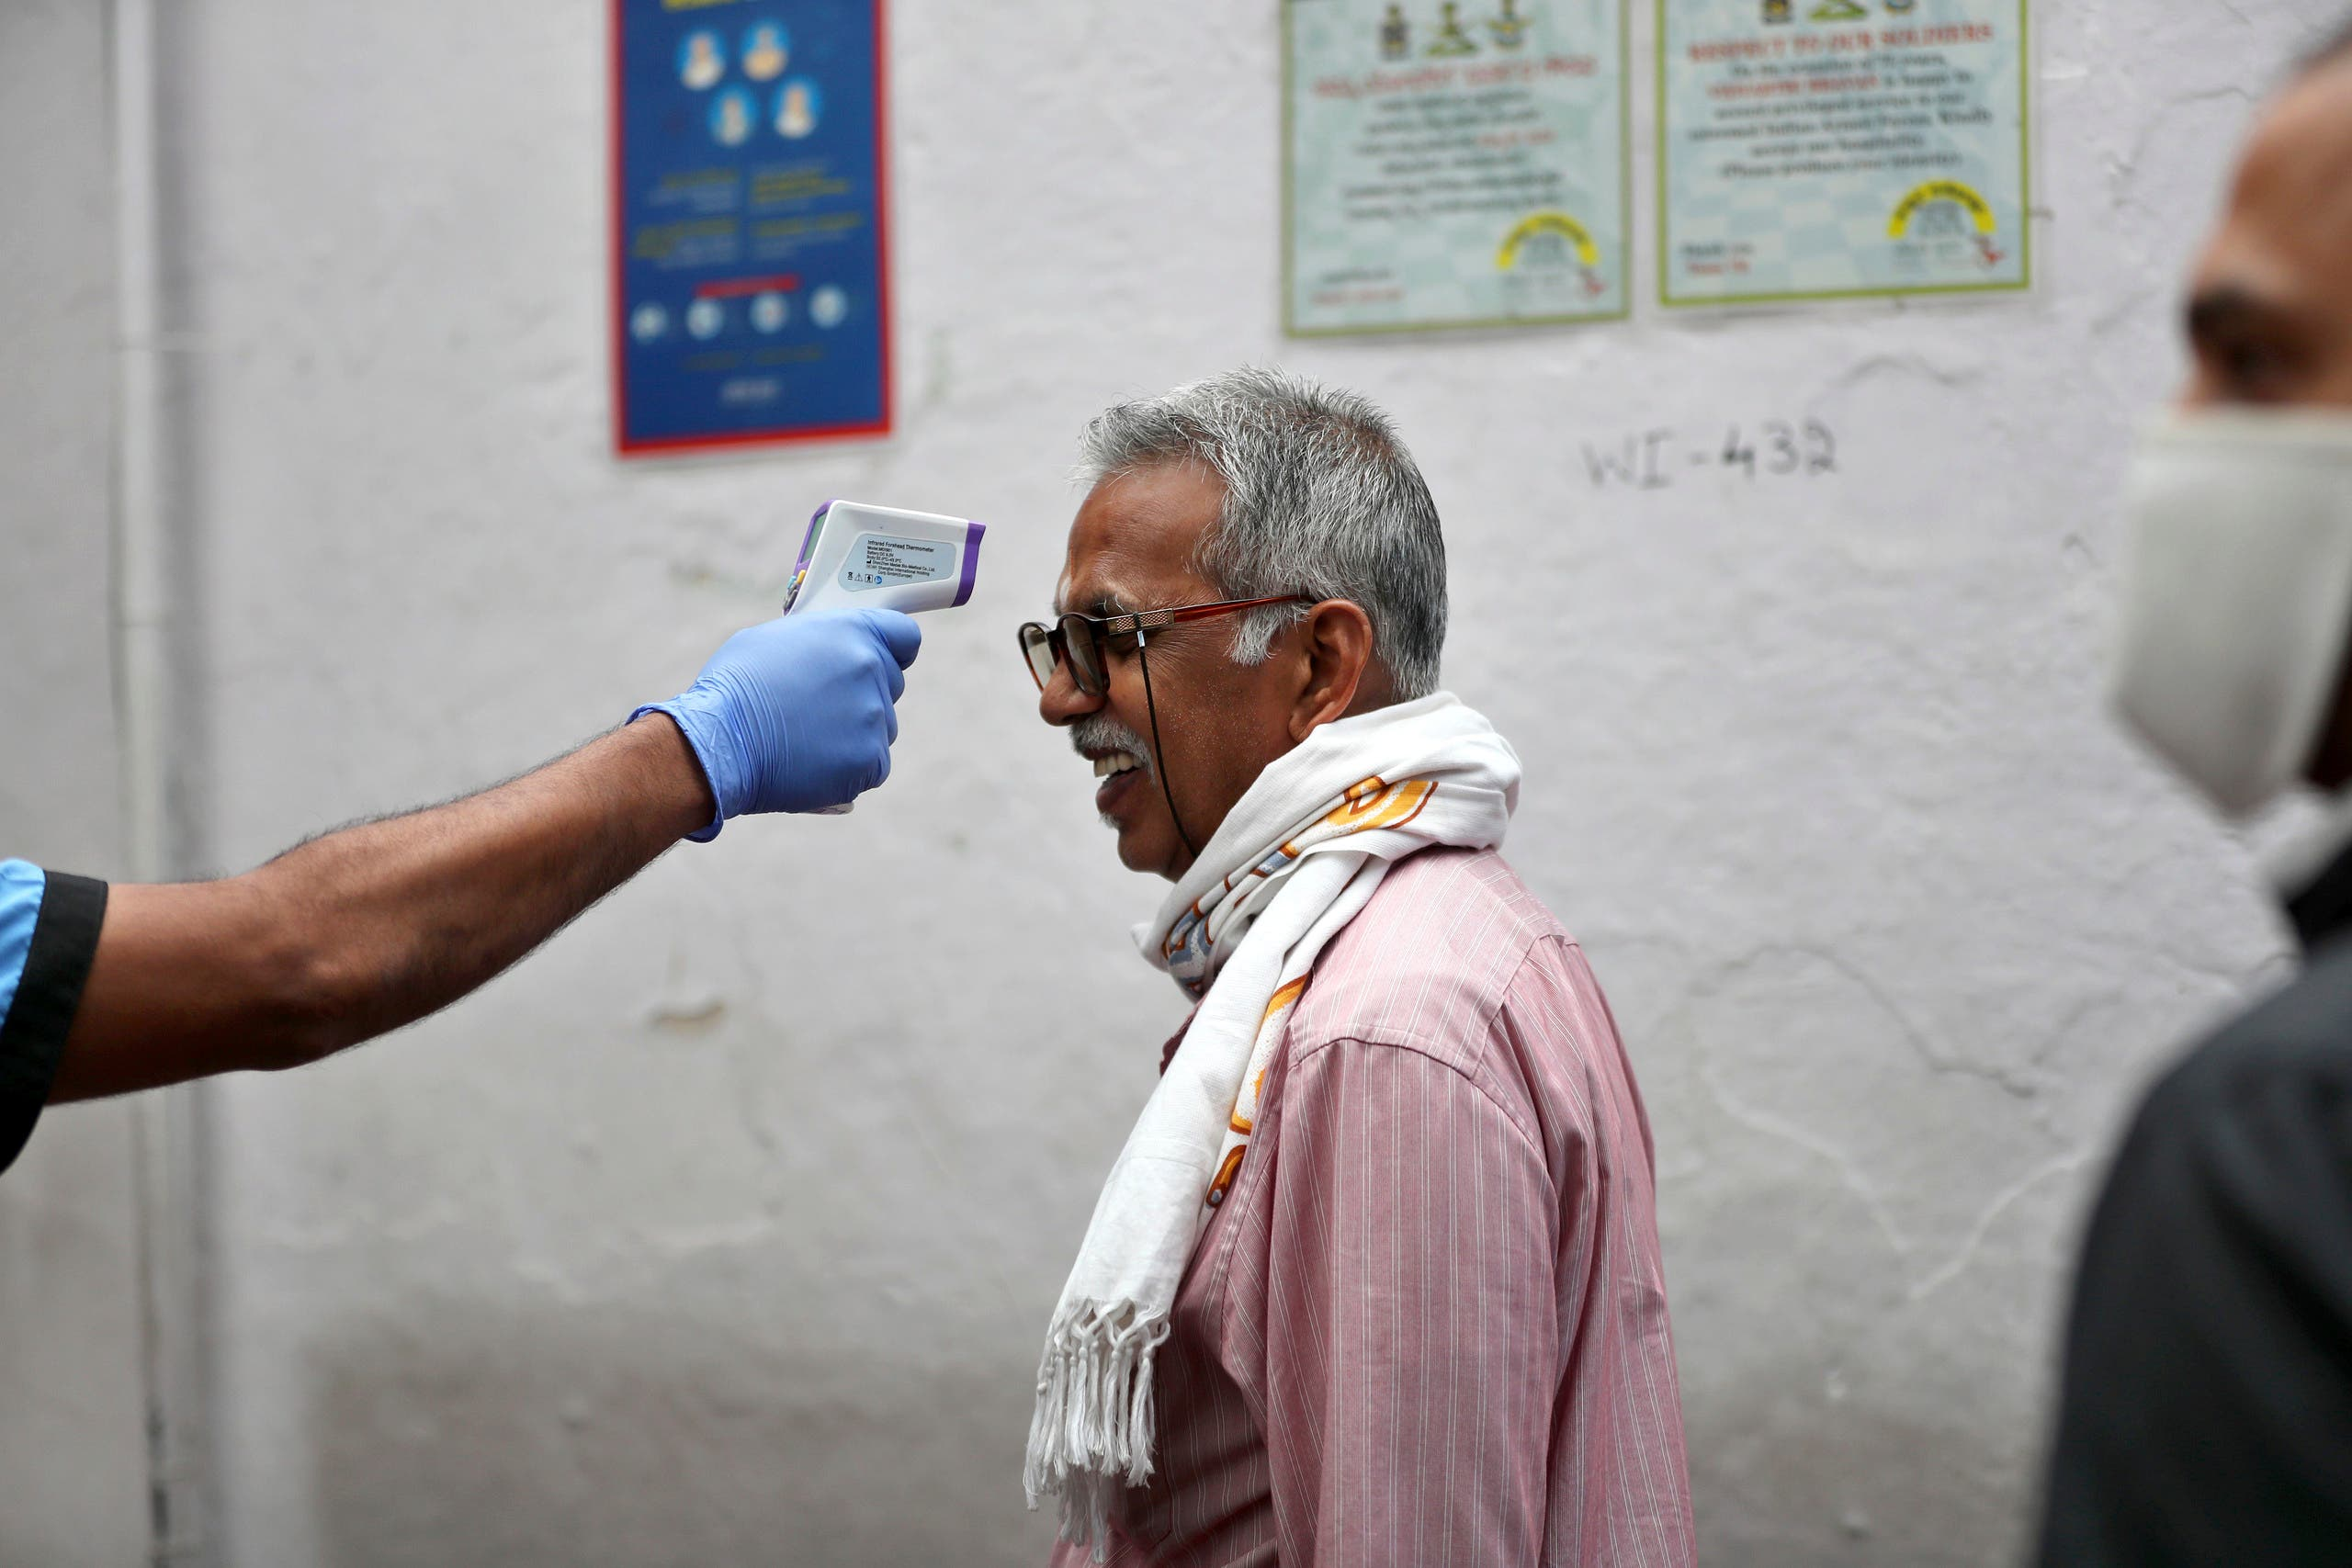 An elderly Indian reacts as a staff member checks his body temperature before allowing him into an eatery in Bengaluru, India on May 30, 2020. (AP)